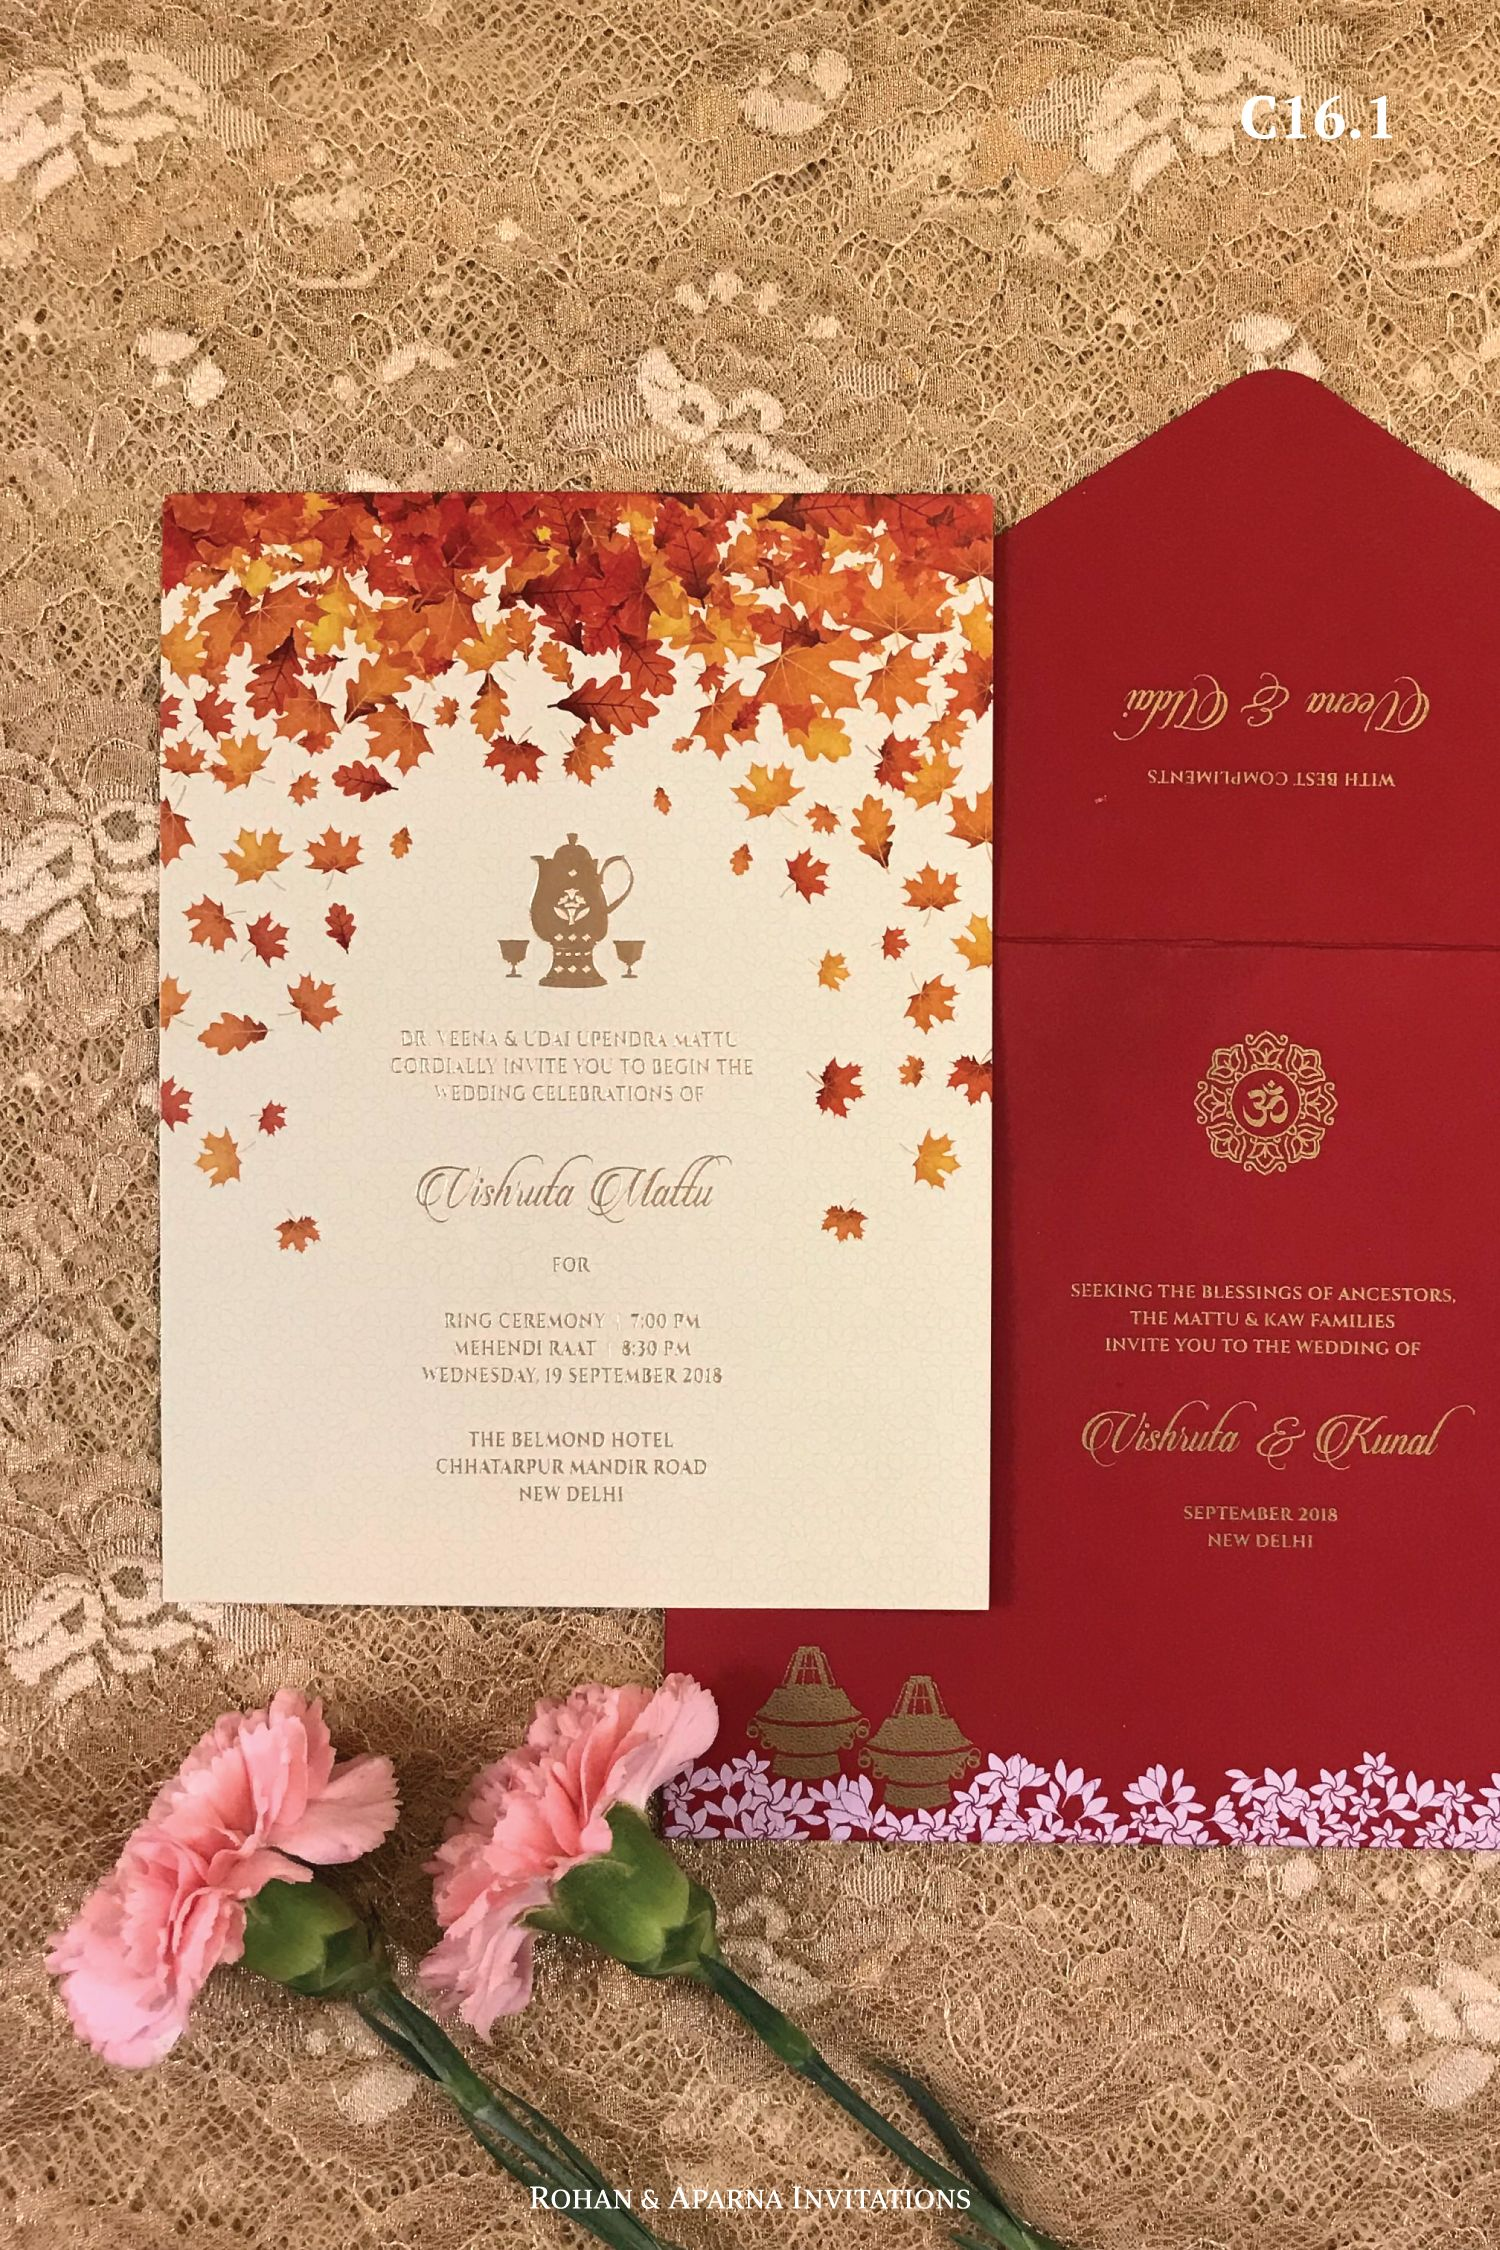 Kashmiri Wedding Invitation With Beautiful Falling Chinar Leaves For More Design Ideas Vis Indian Wedding Invitation Cards Indian Wedding Cards Wedding Cards